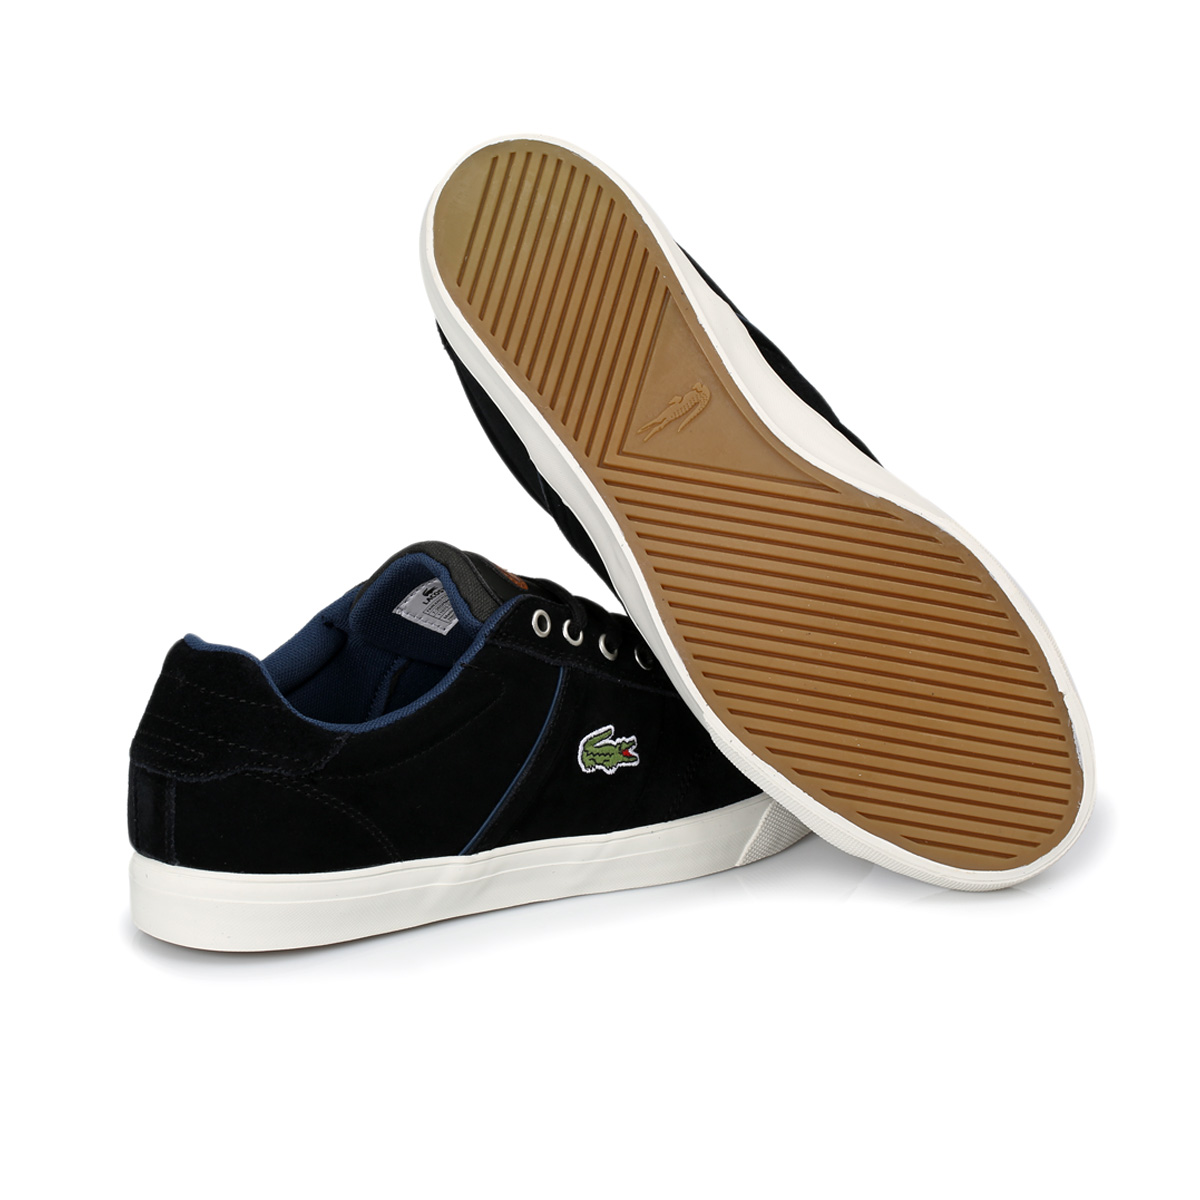 Yellow And Black Lacoste Shoes 21